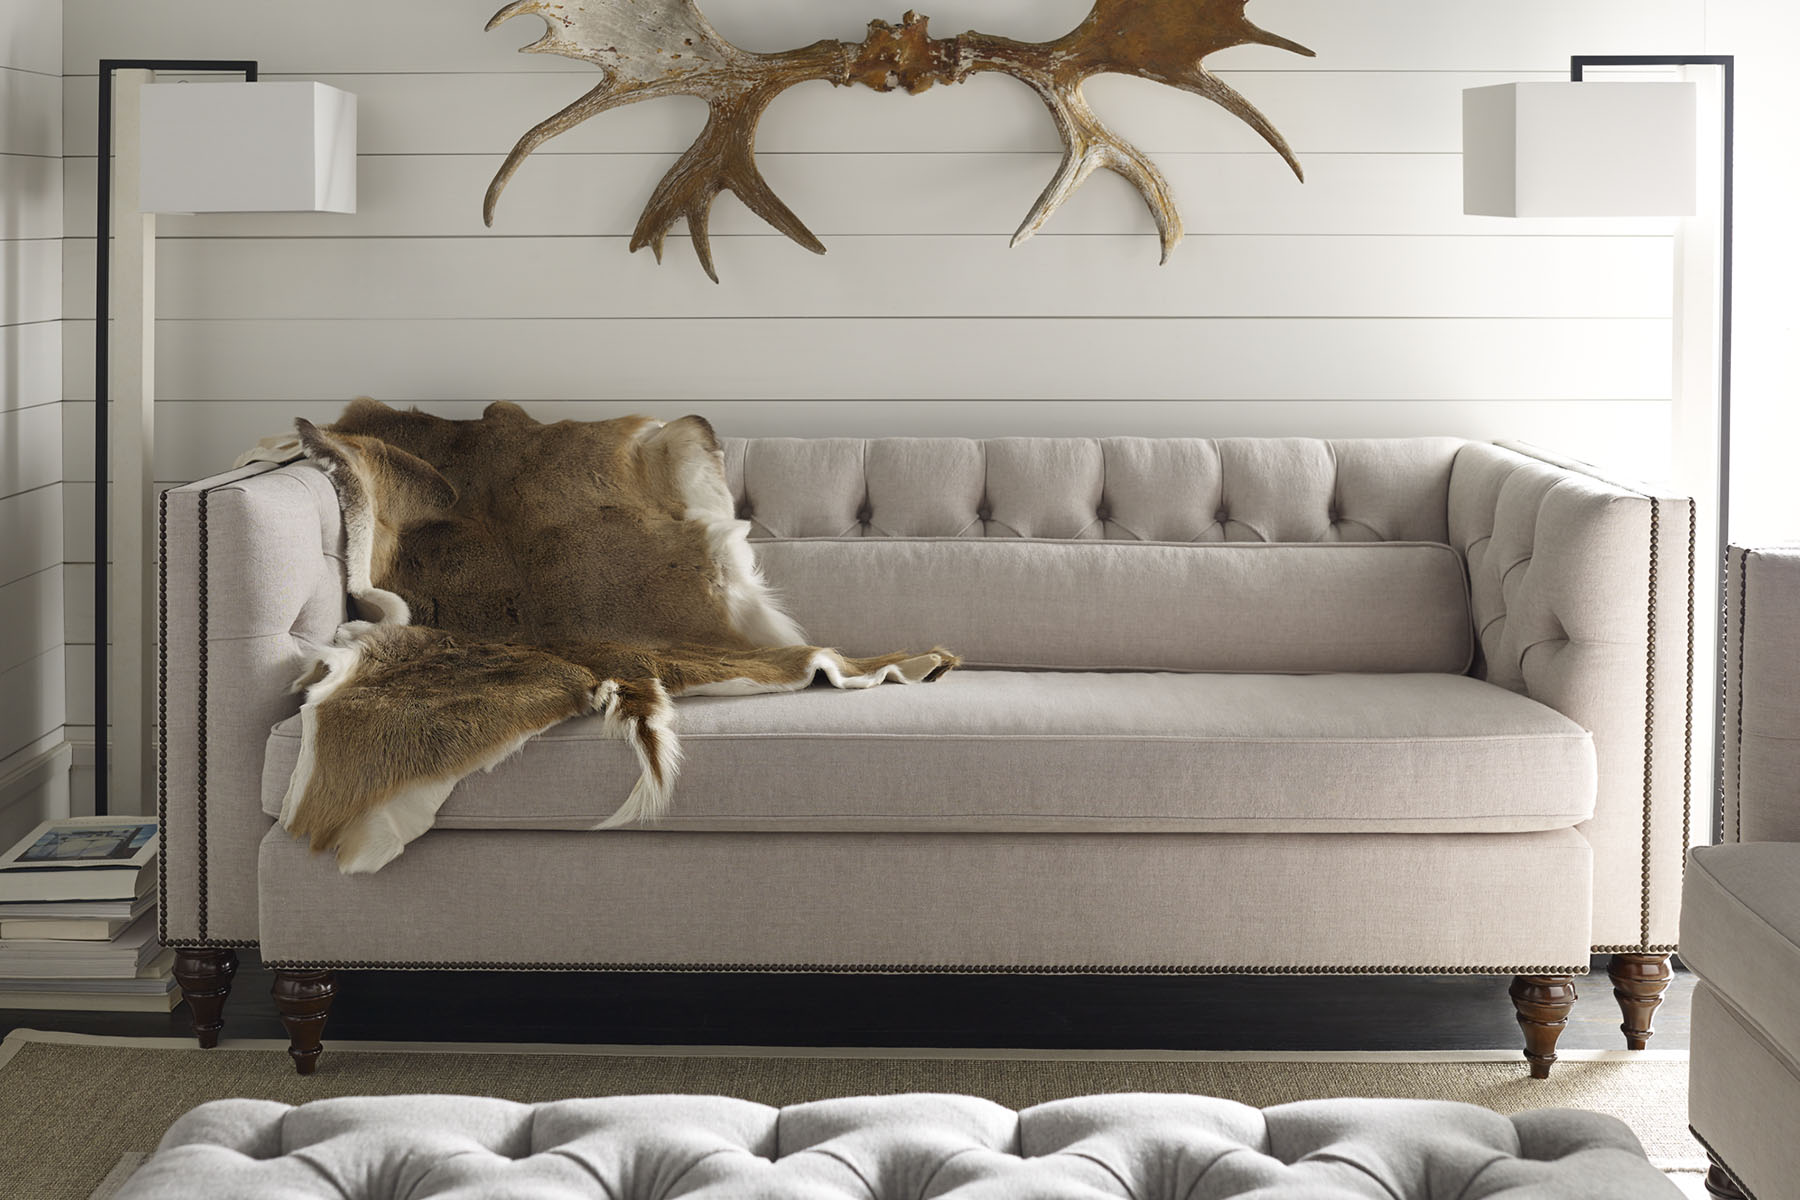 Darryl Carter for Milling Road - Blake sofa